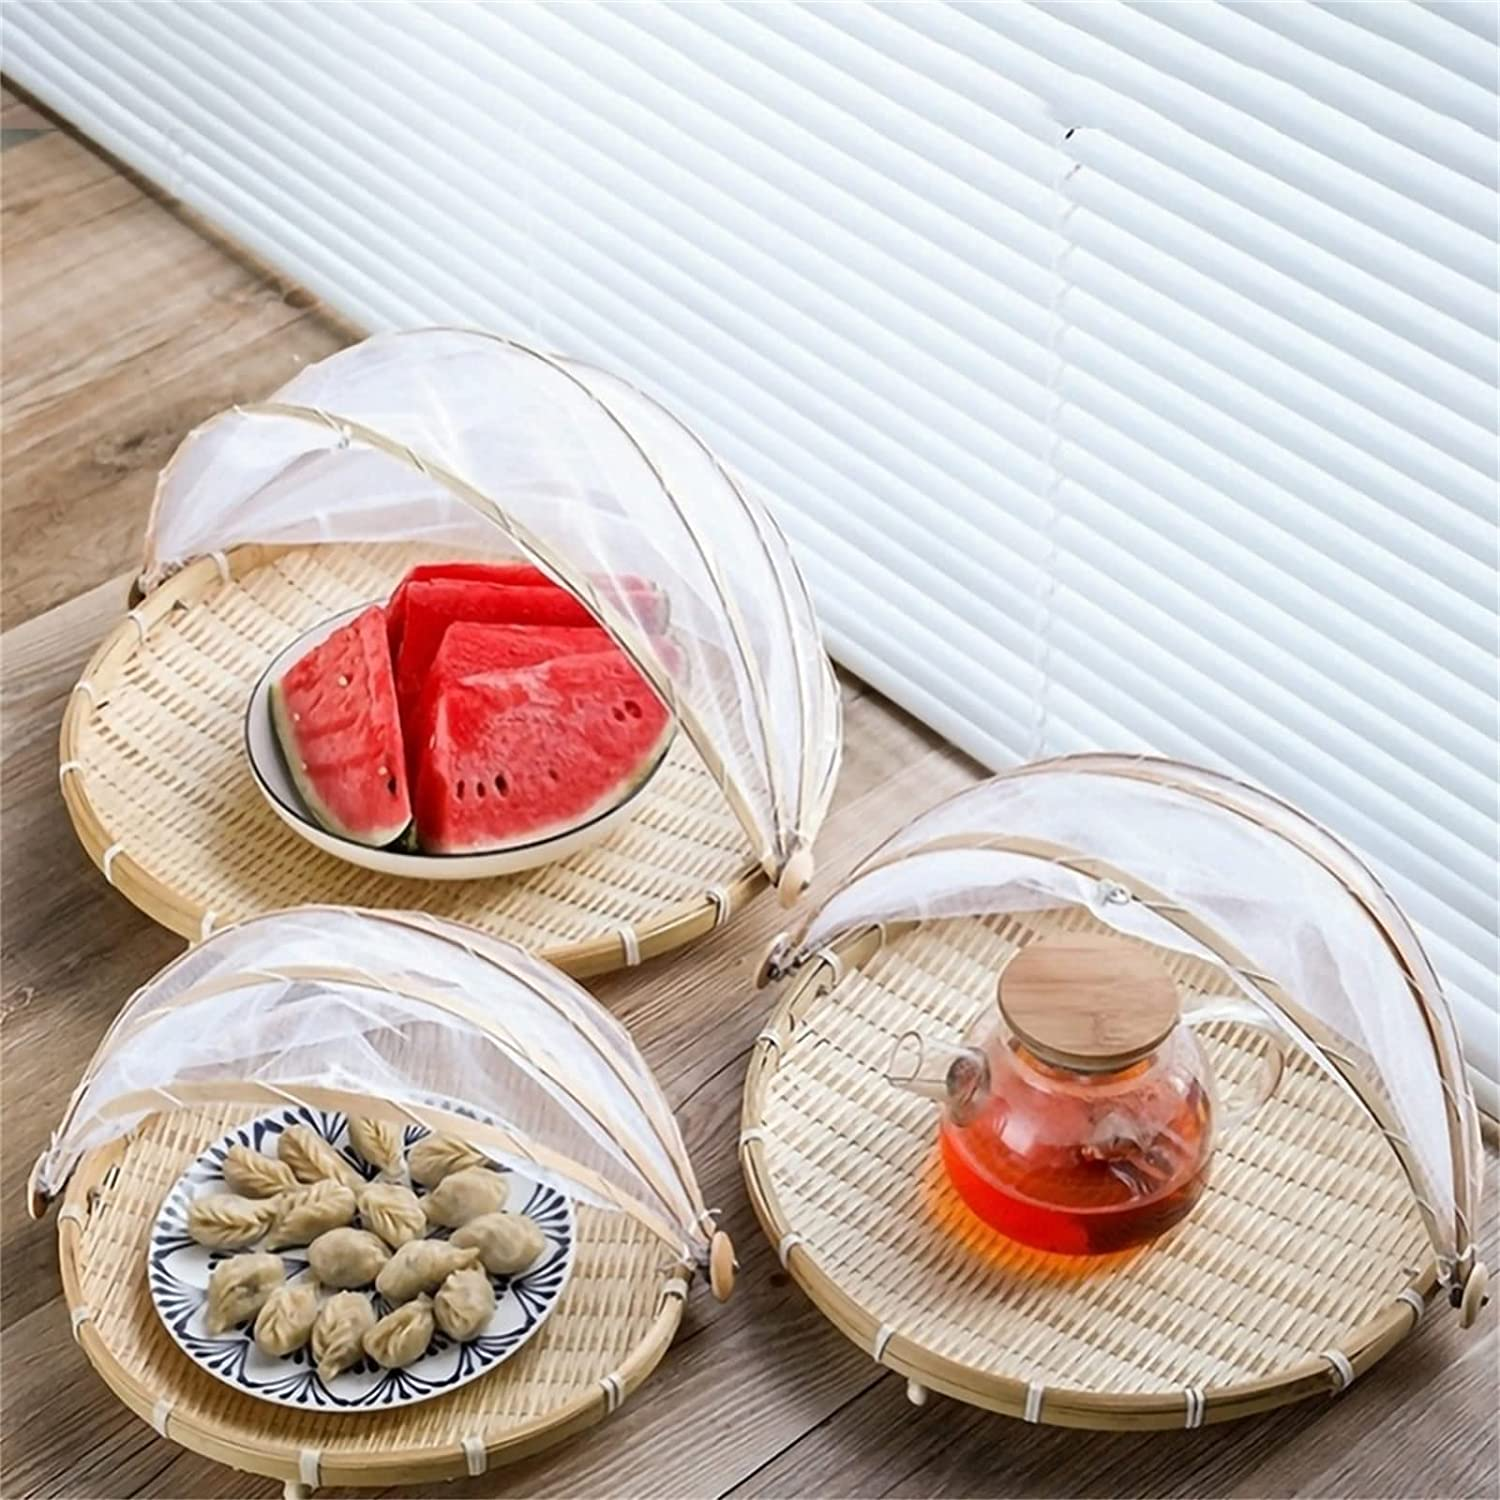 WOIE Hand-Woven Food Serving Tent Basket Tray Fruit Vegetable Bread Storage Basket Simple Atmosphere Outdoor Picnic Mesh Net Cover (D)